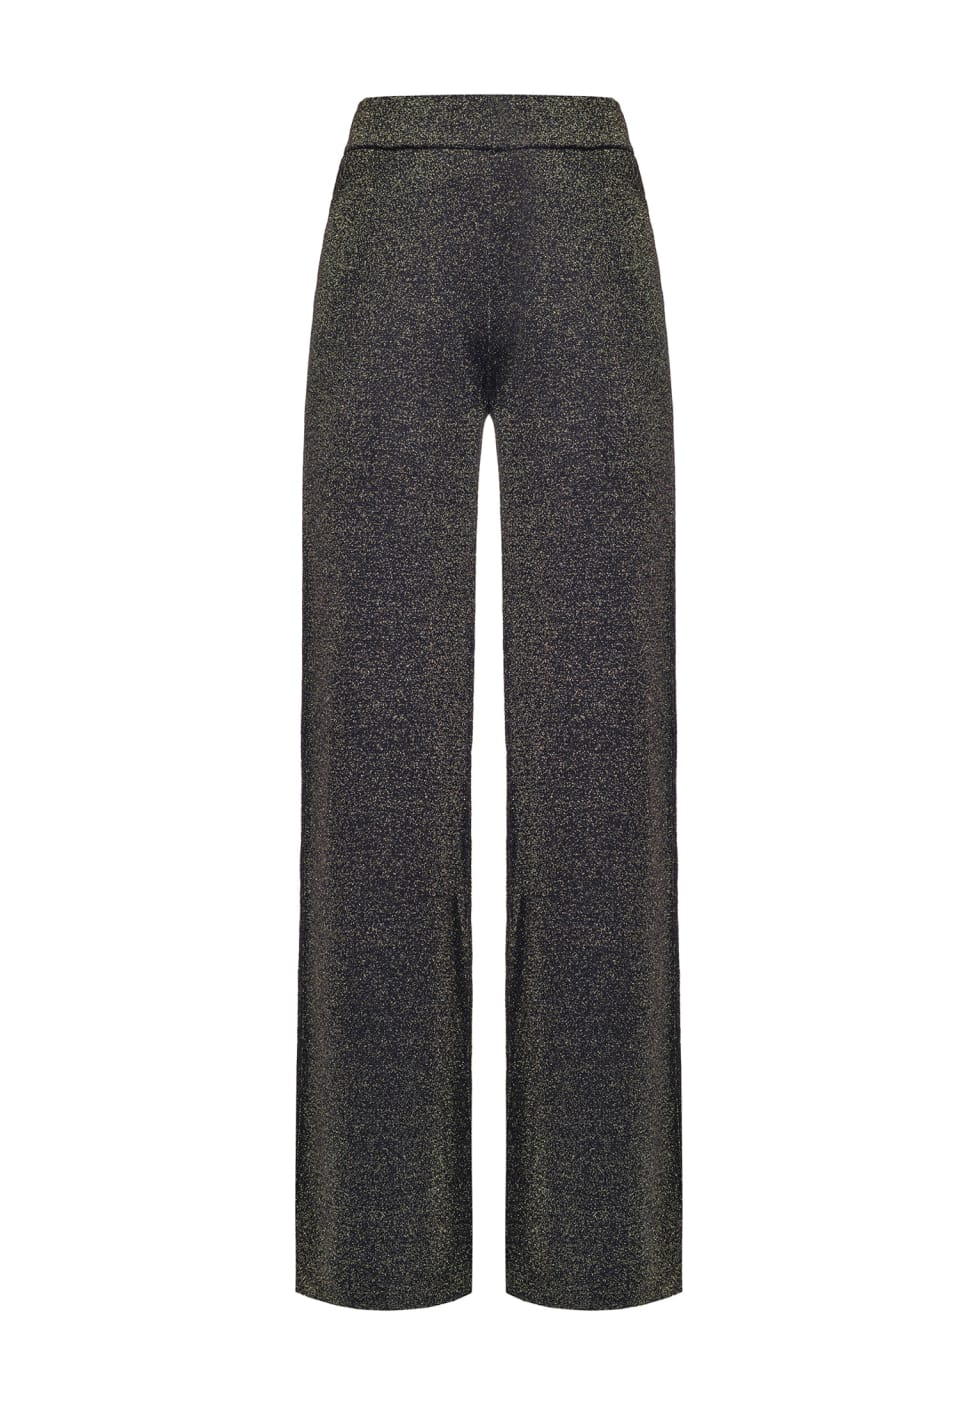 Lurex knit trousers - Pinko